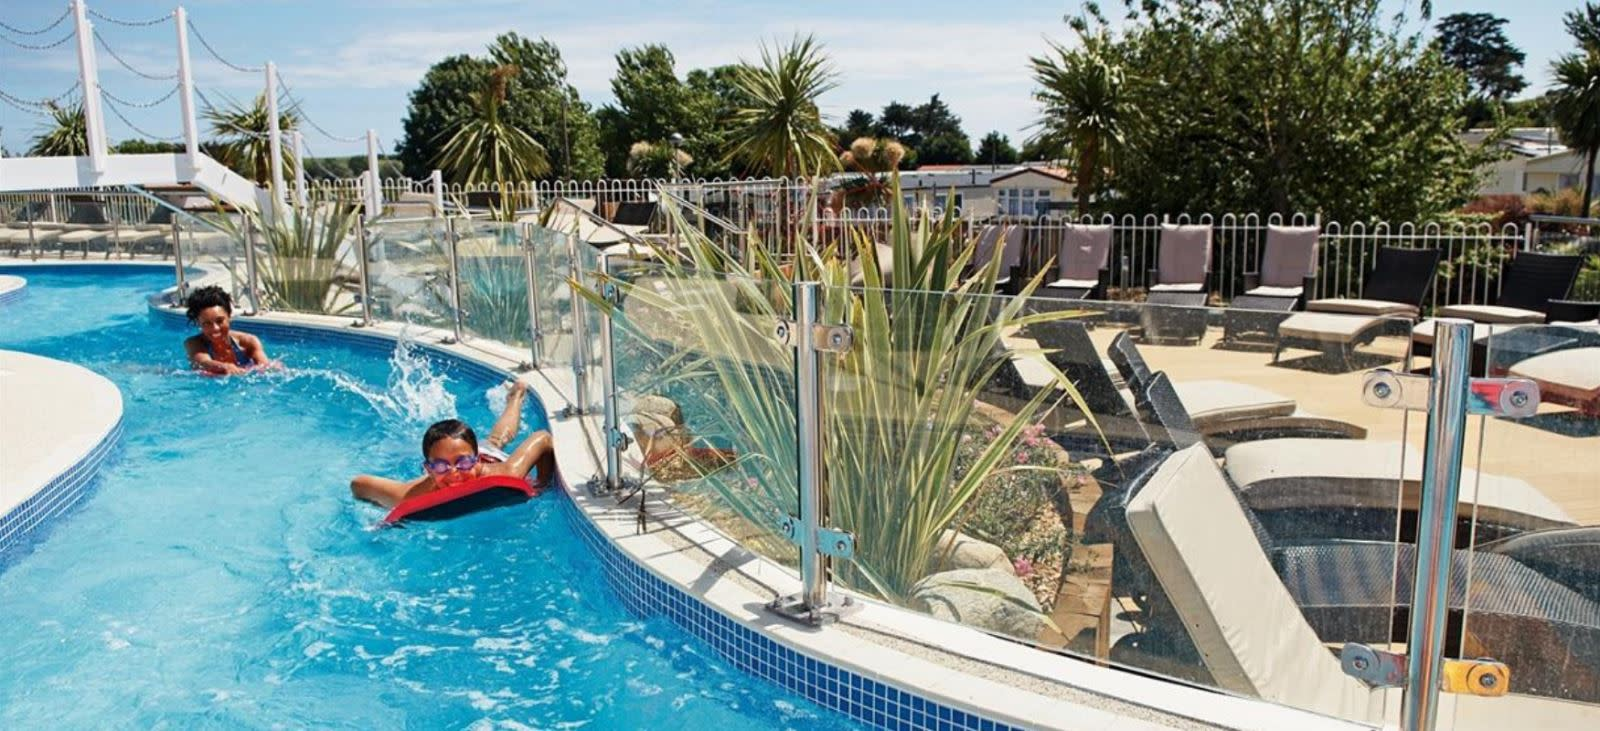 Outdoor swimming pool and Lazy River at Weymouth Bay Holiday Park, Dorset